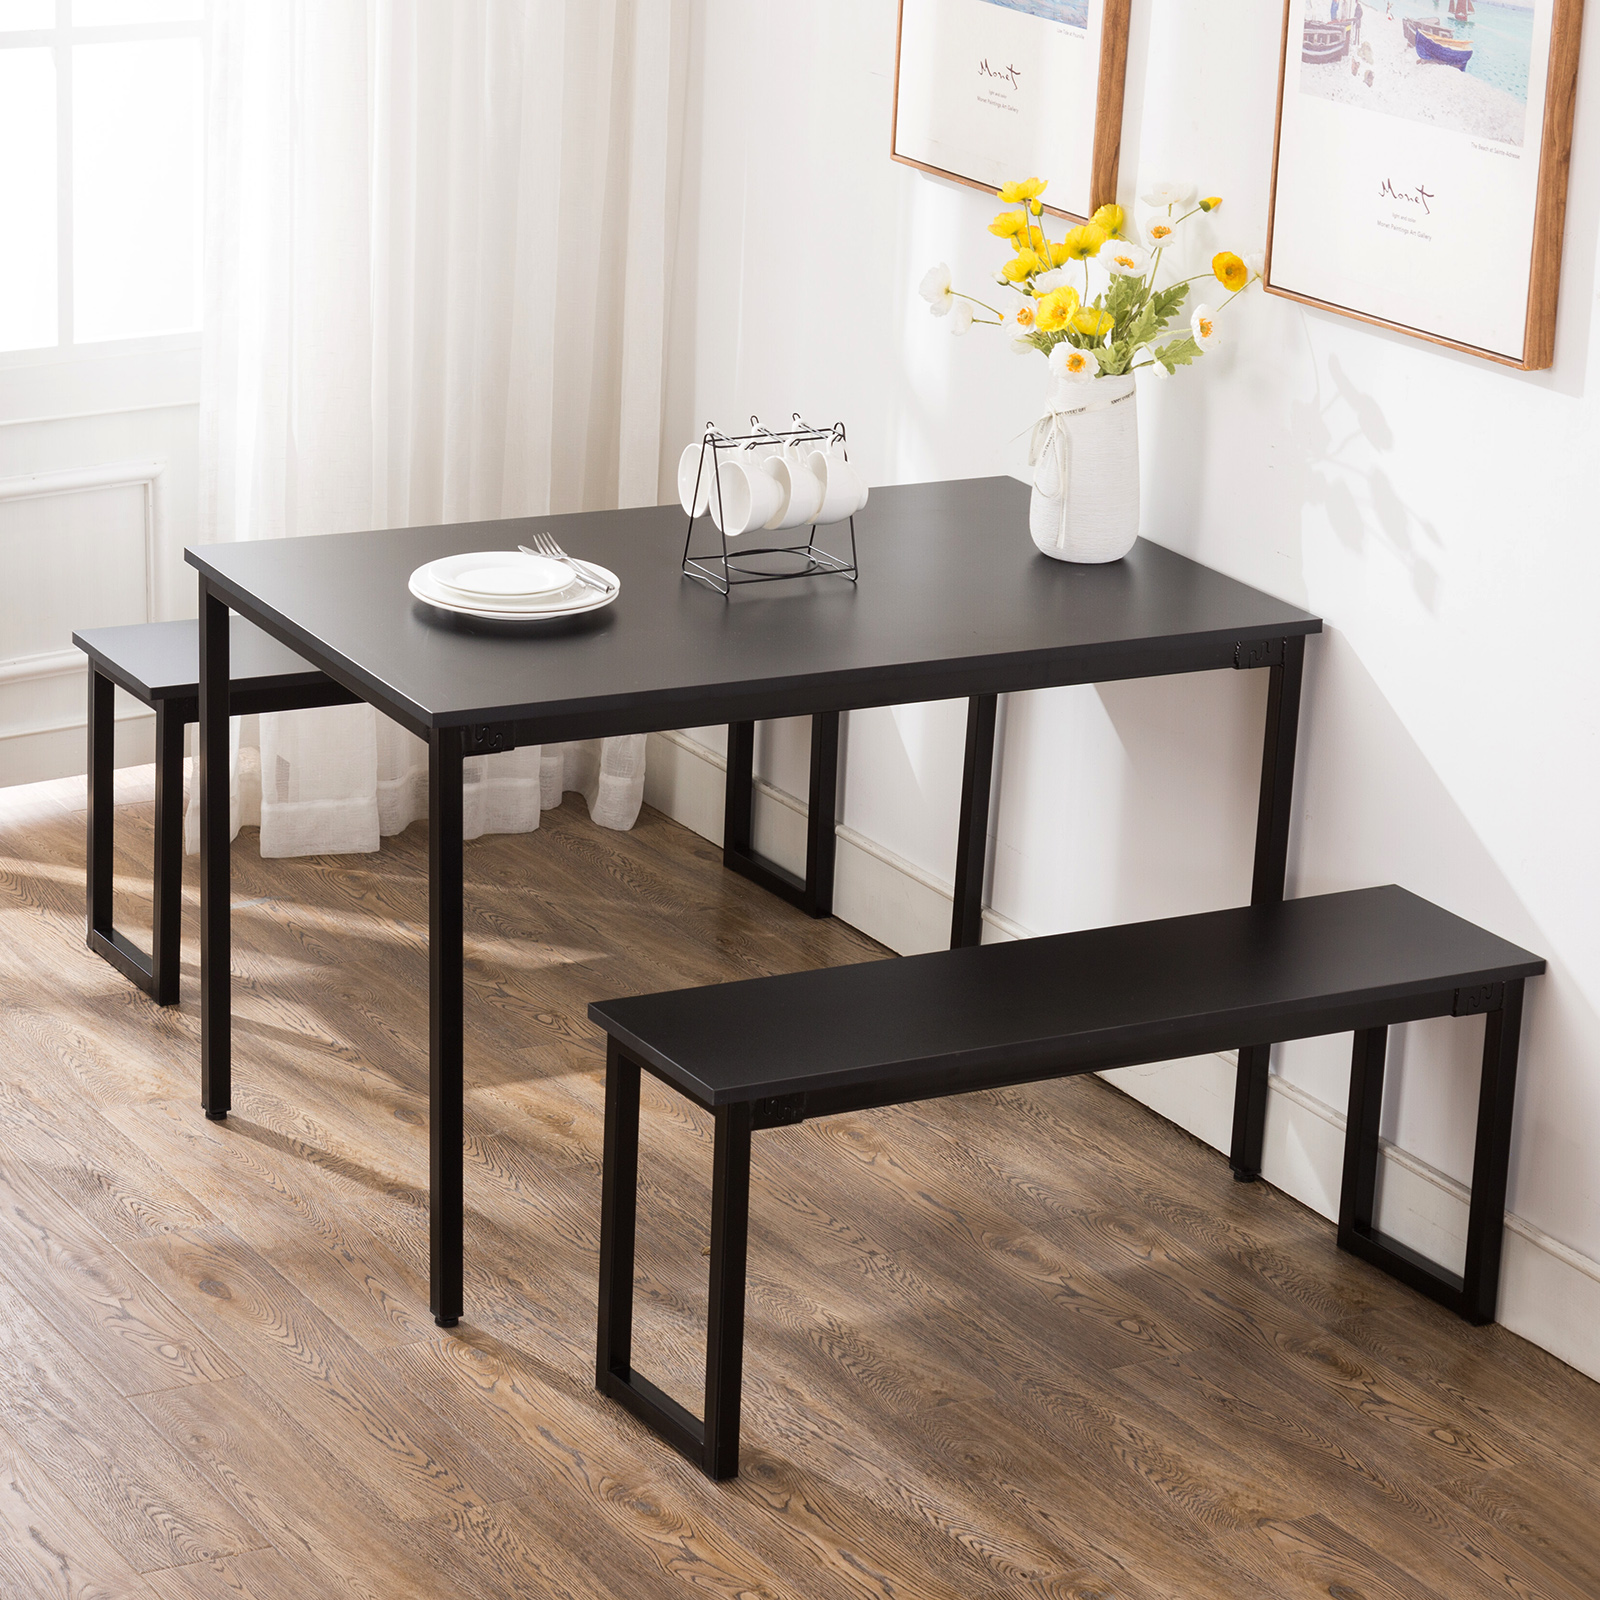 Dining Room Table With 2 Benches 2